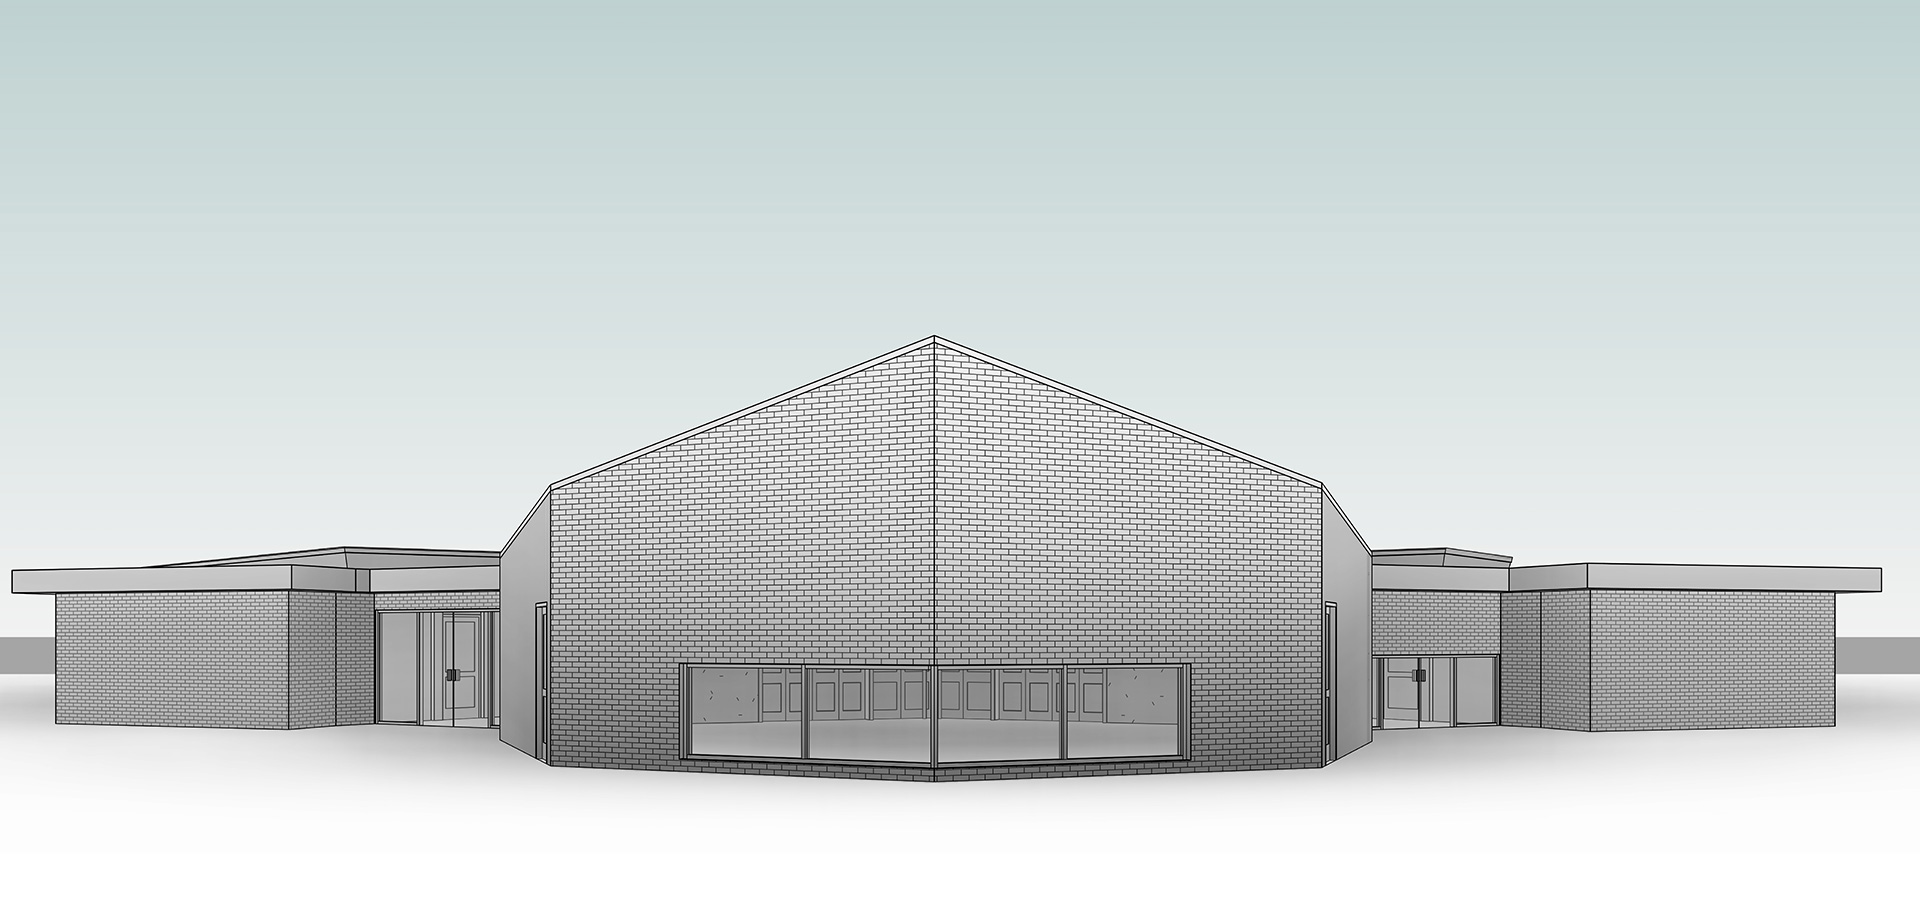 3D-Architectural-BIM-Model-Commercial-Revit-Modeling-by-United-BIM